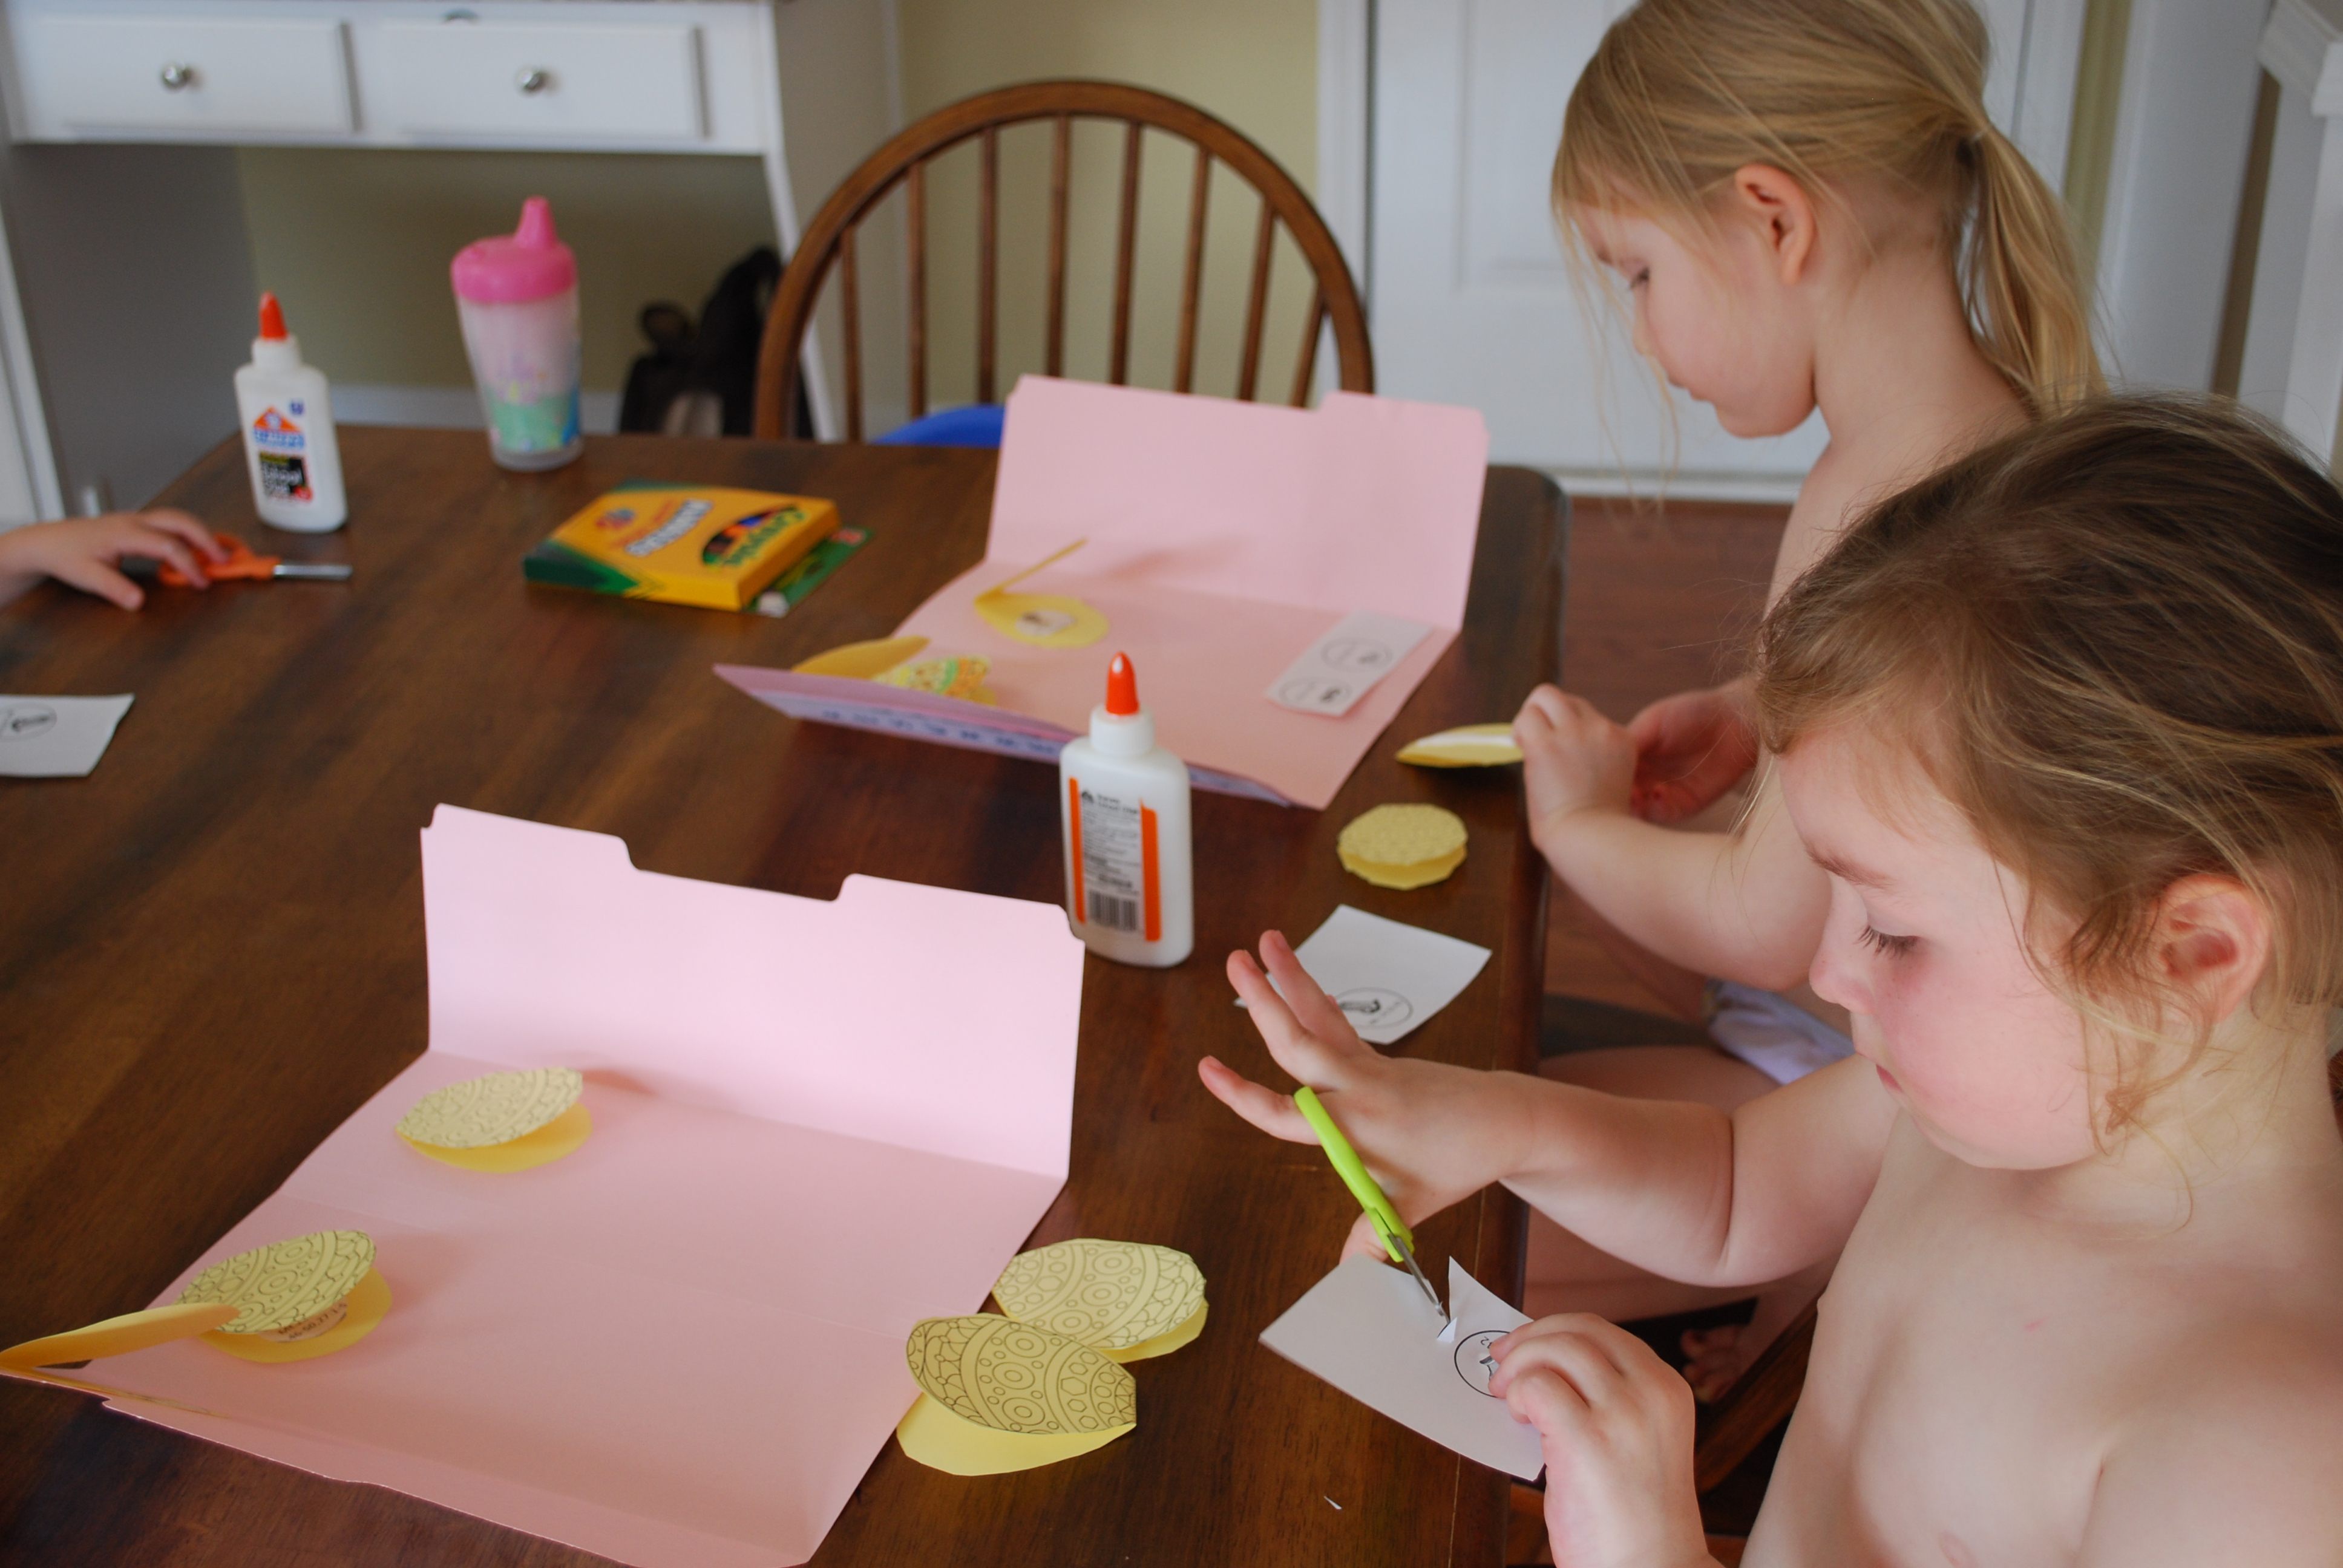 Katherine and Ruby over at the table working on their Resurrection Eggs booklet.